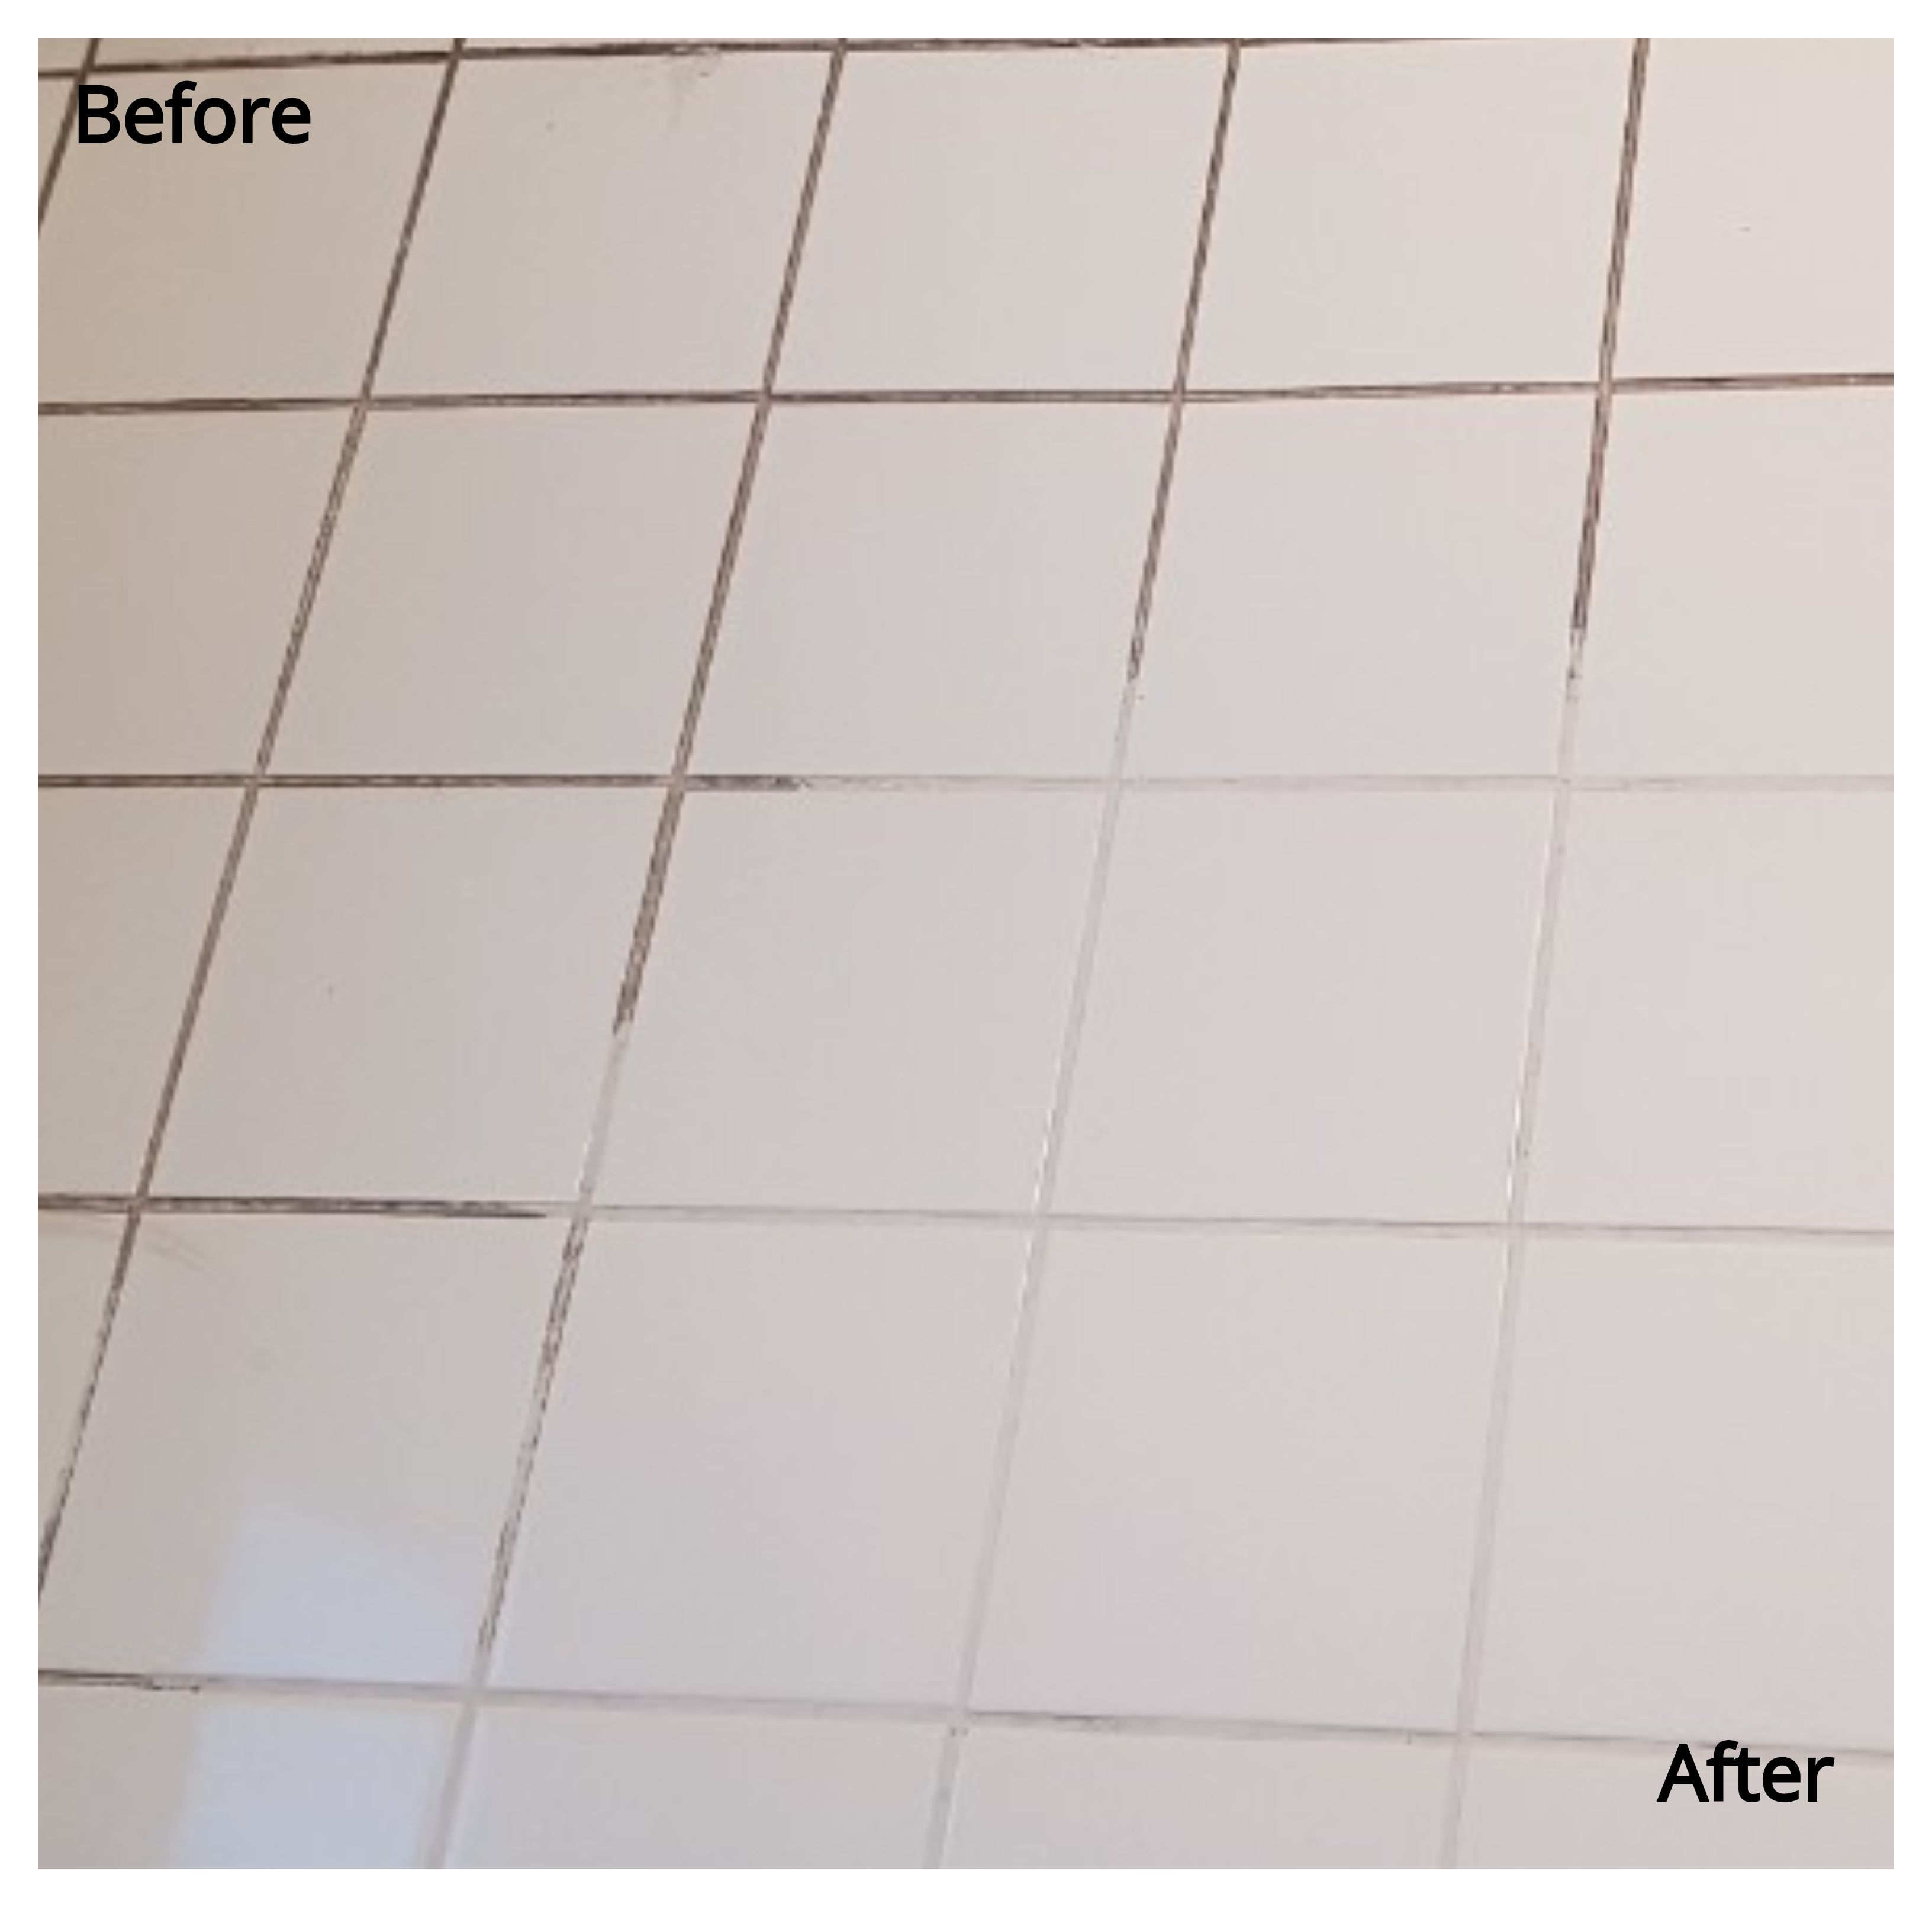 Pin by FastKlean on Before / After Cleaning Pictures